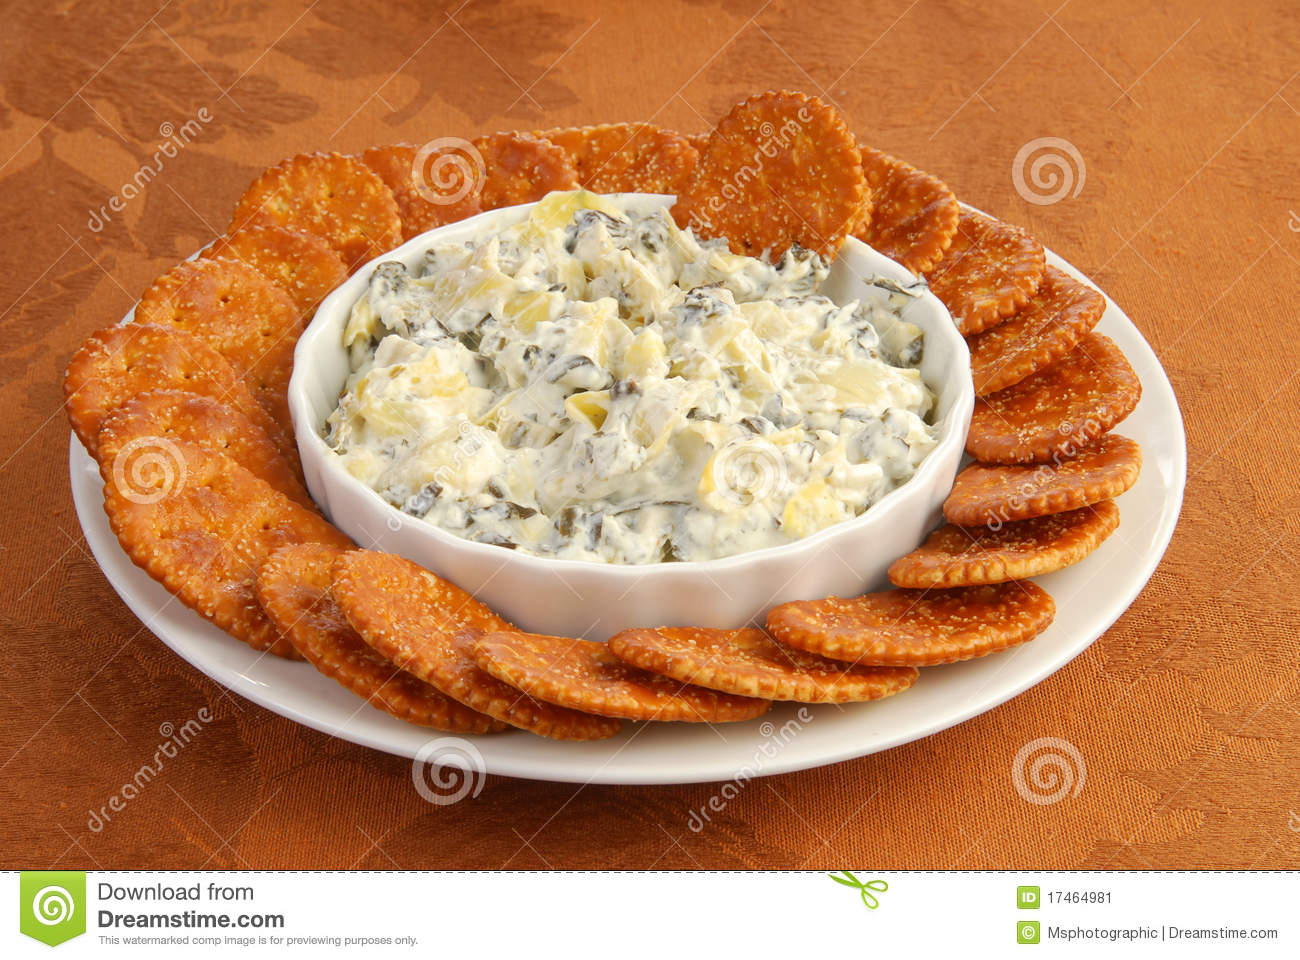 Crackers And Dip Stock Image   Image  17464981